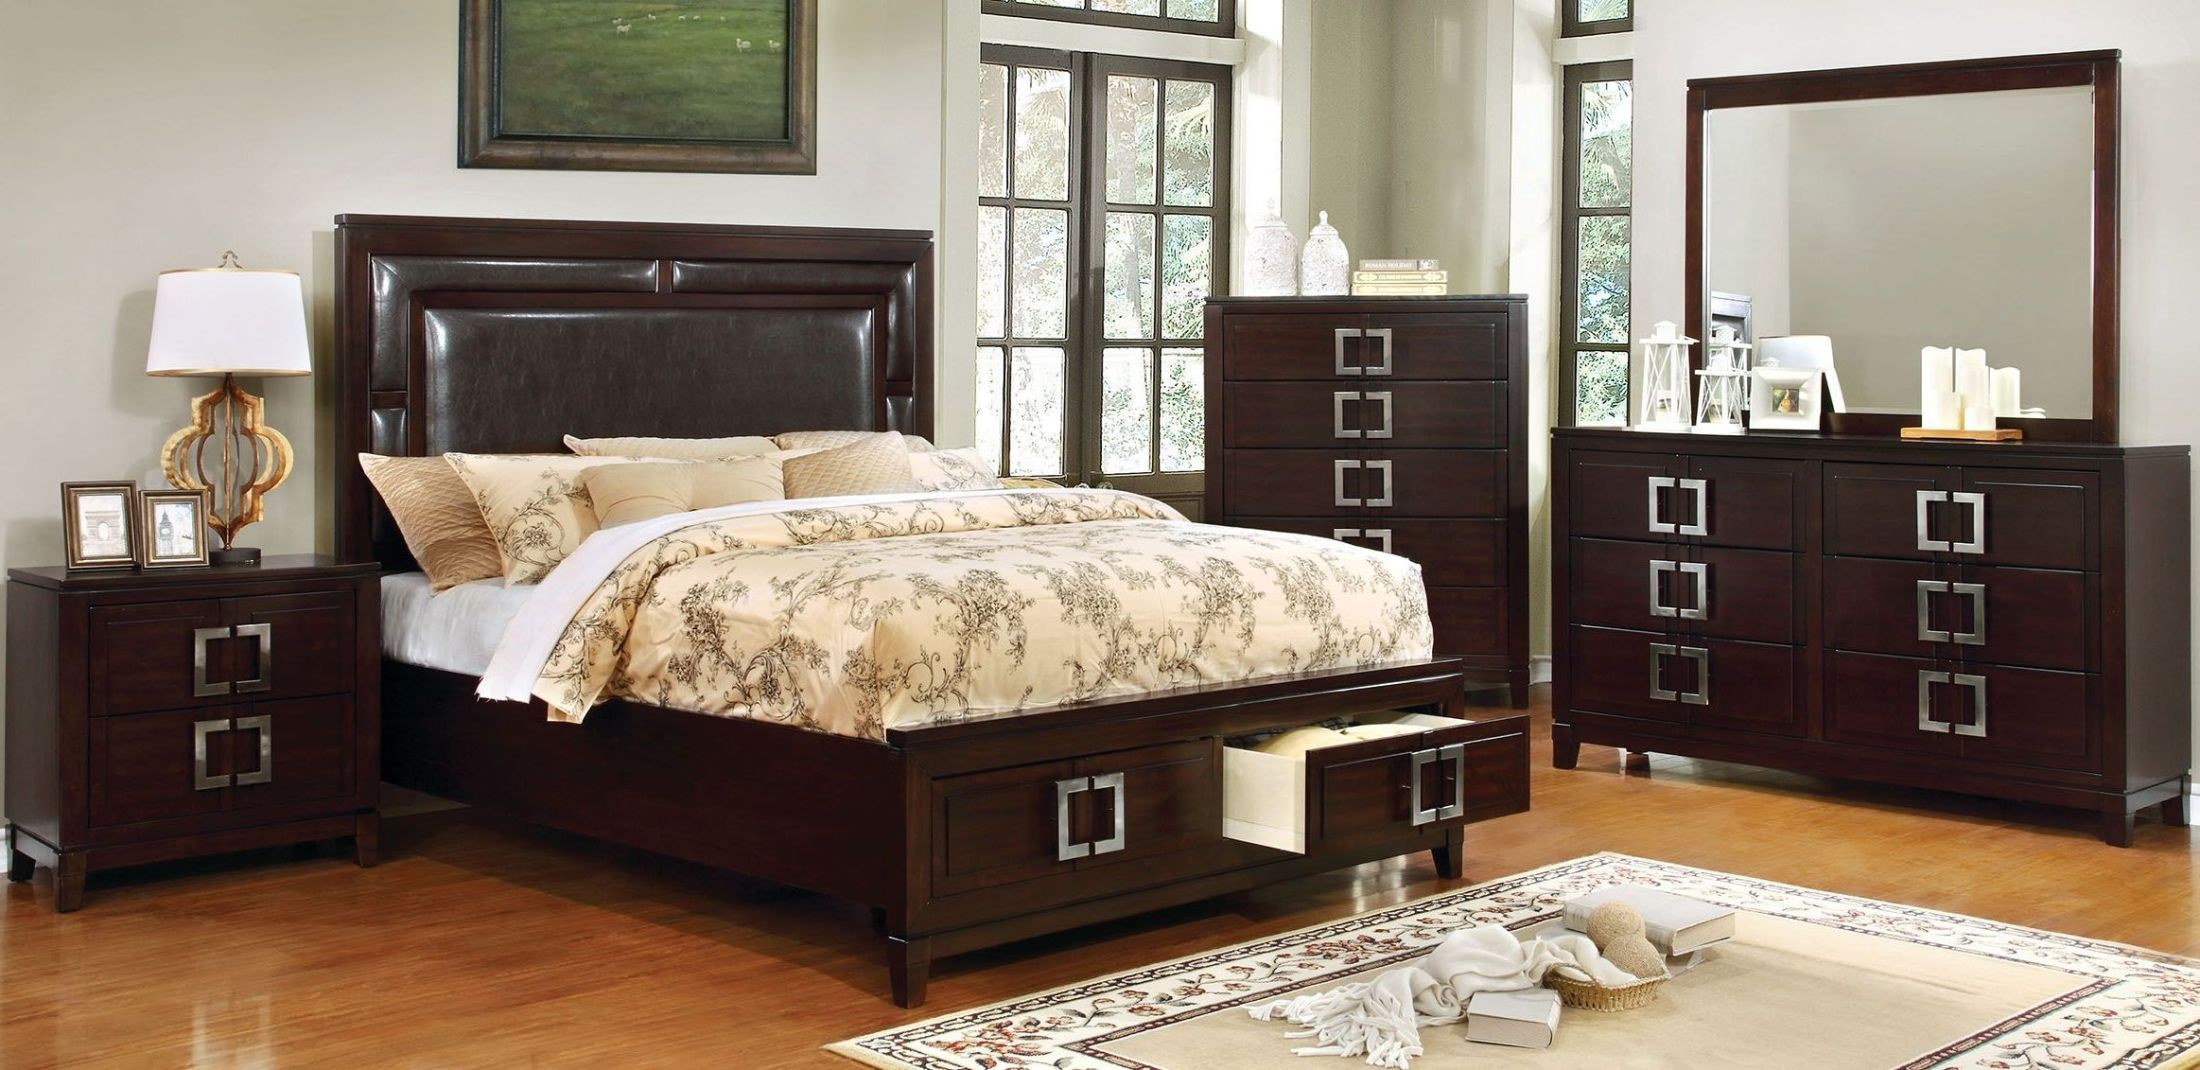 Balfour Brown Cherry Panel Storage Bedroom Set CM7385Q Furniture of America